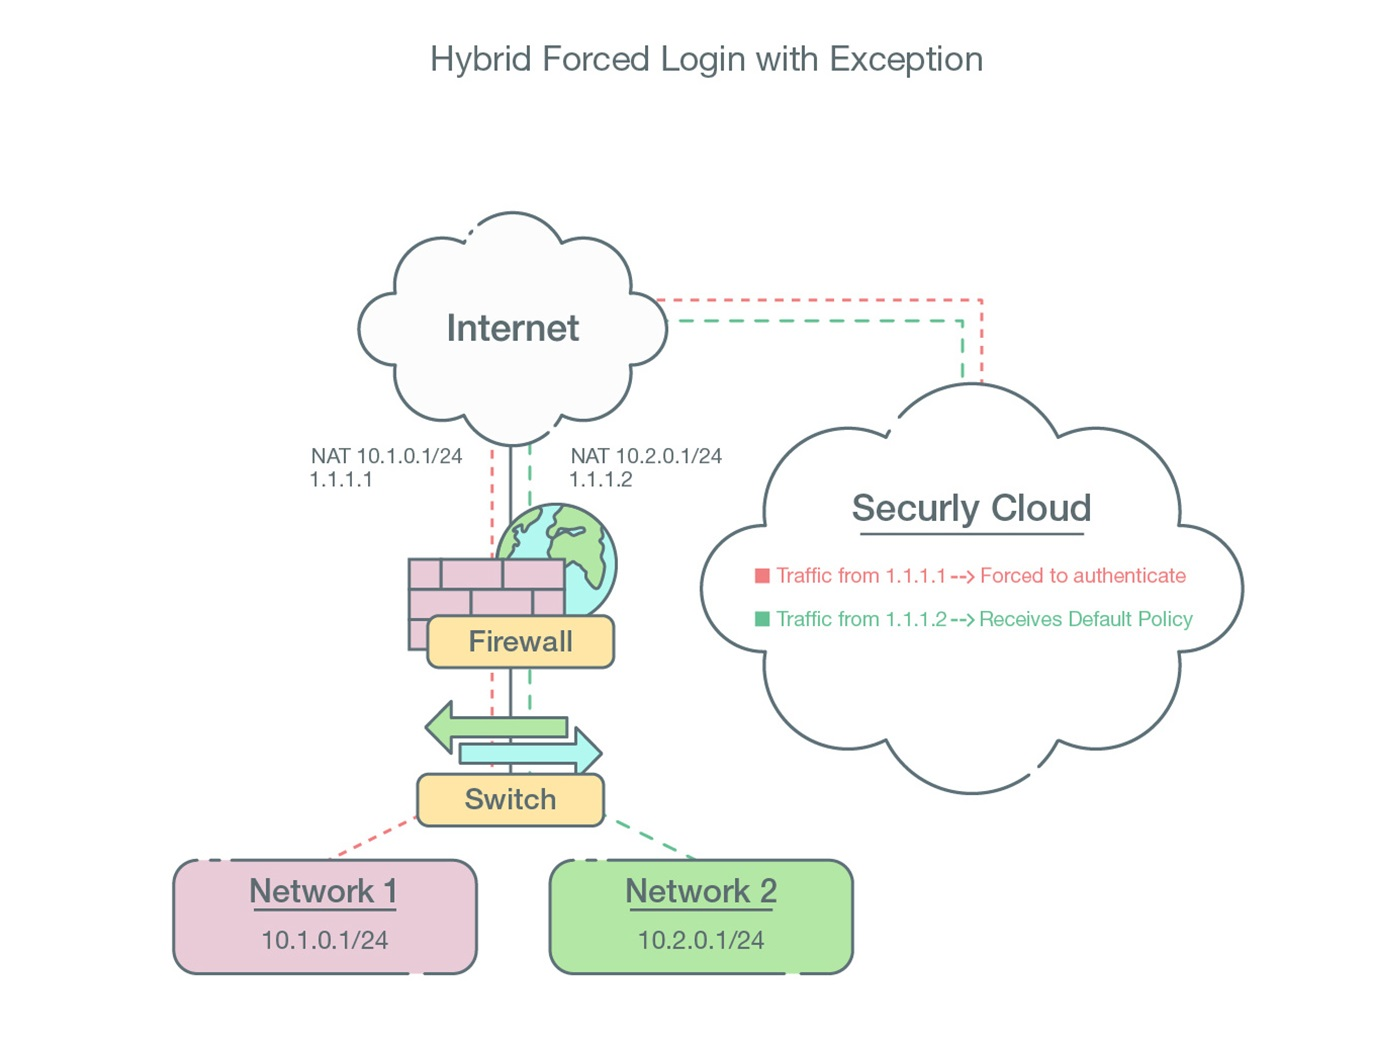 hybrid-forced-login-with-exception.jpg